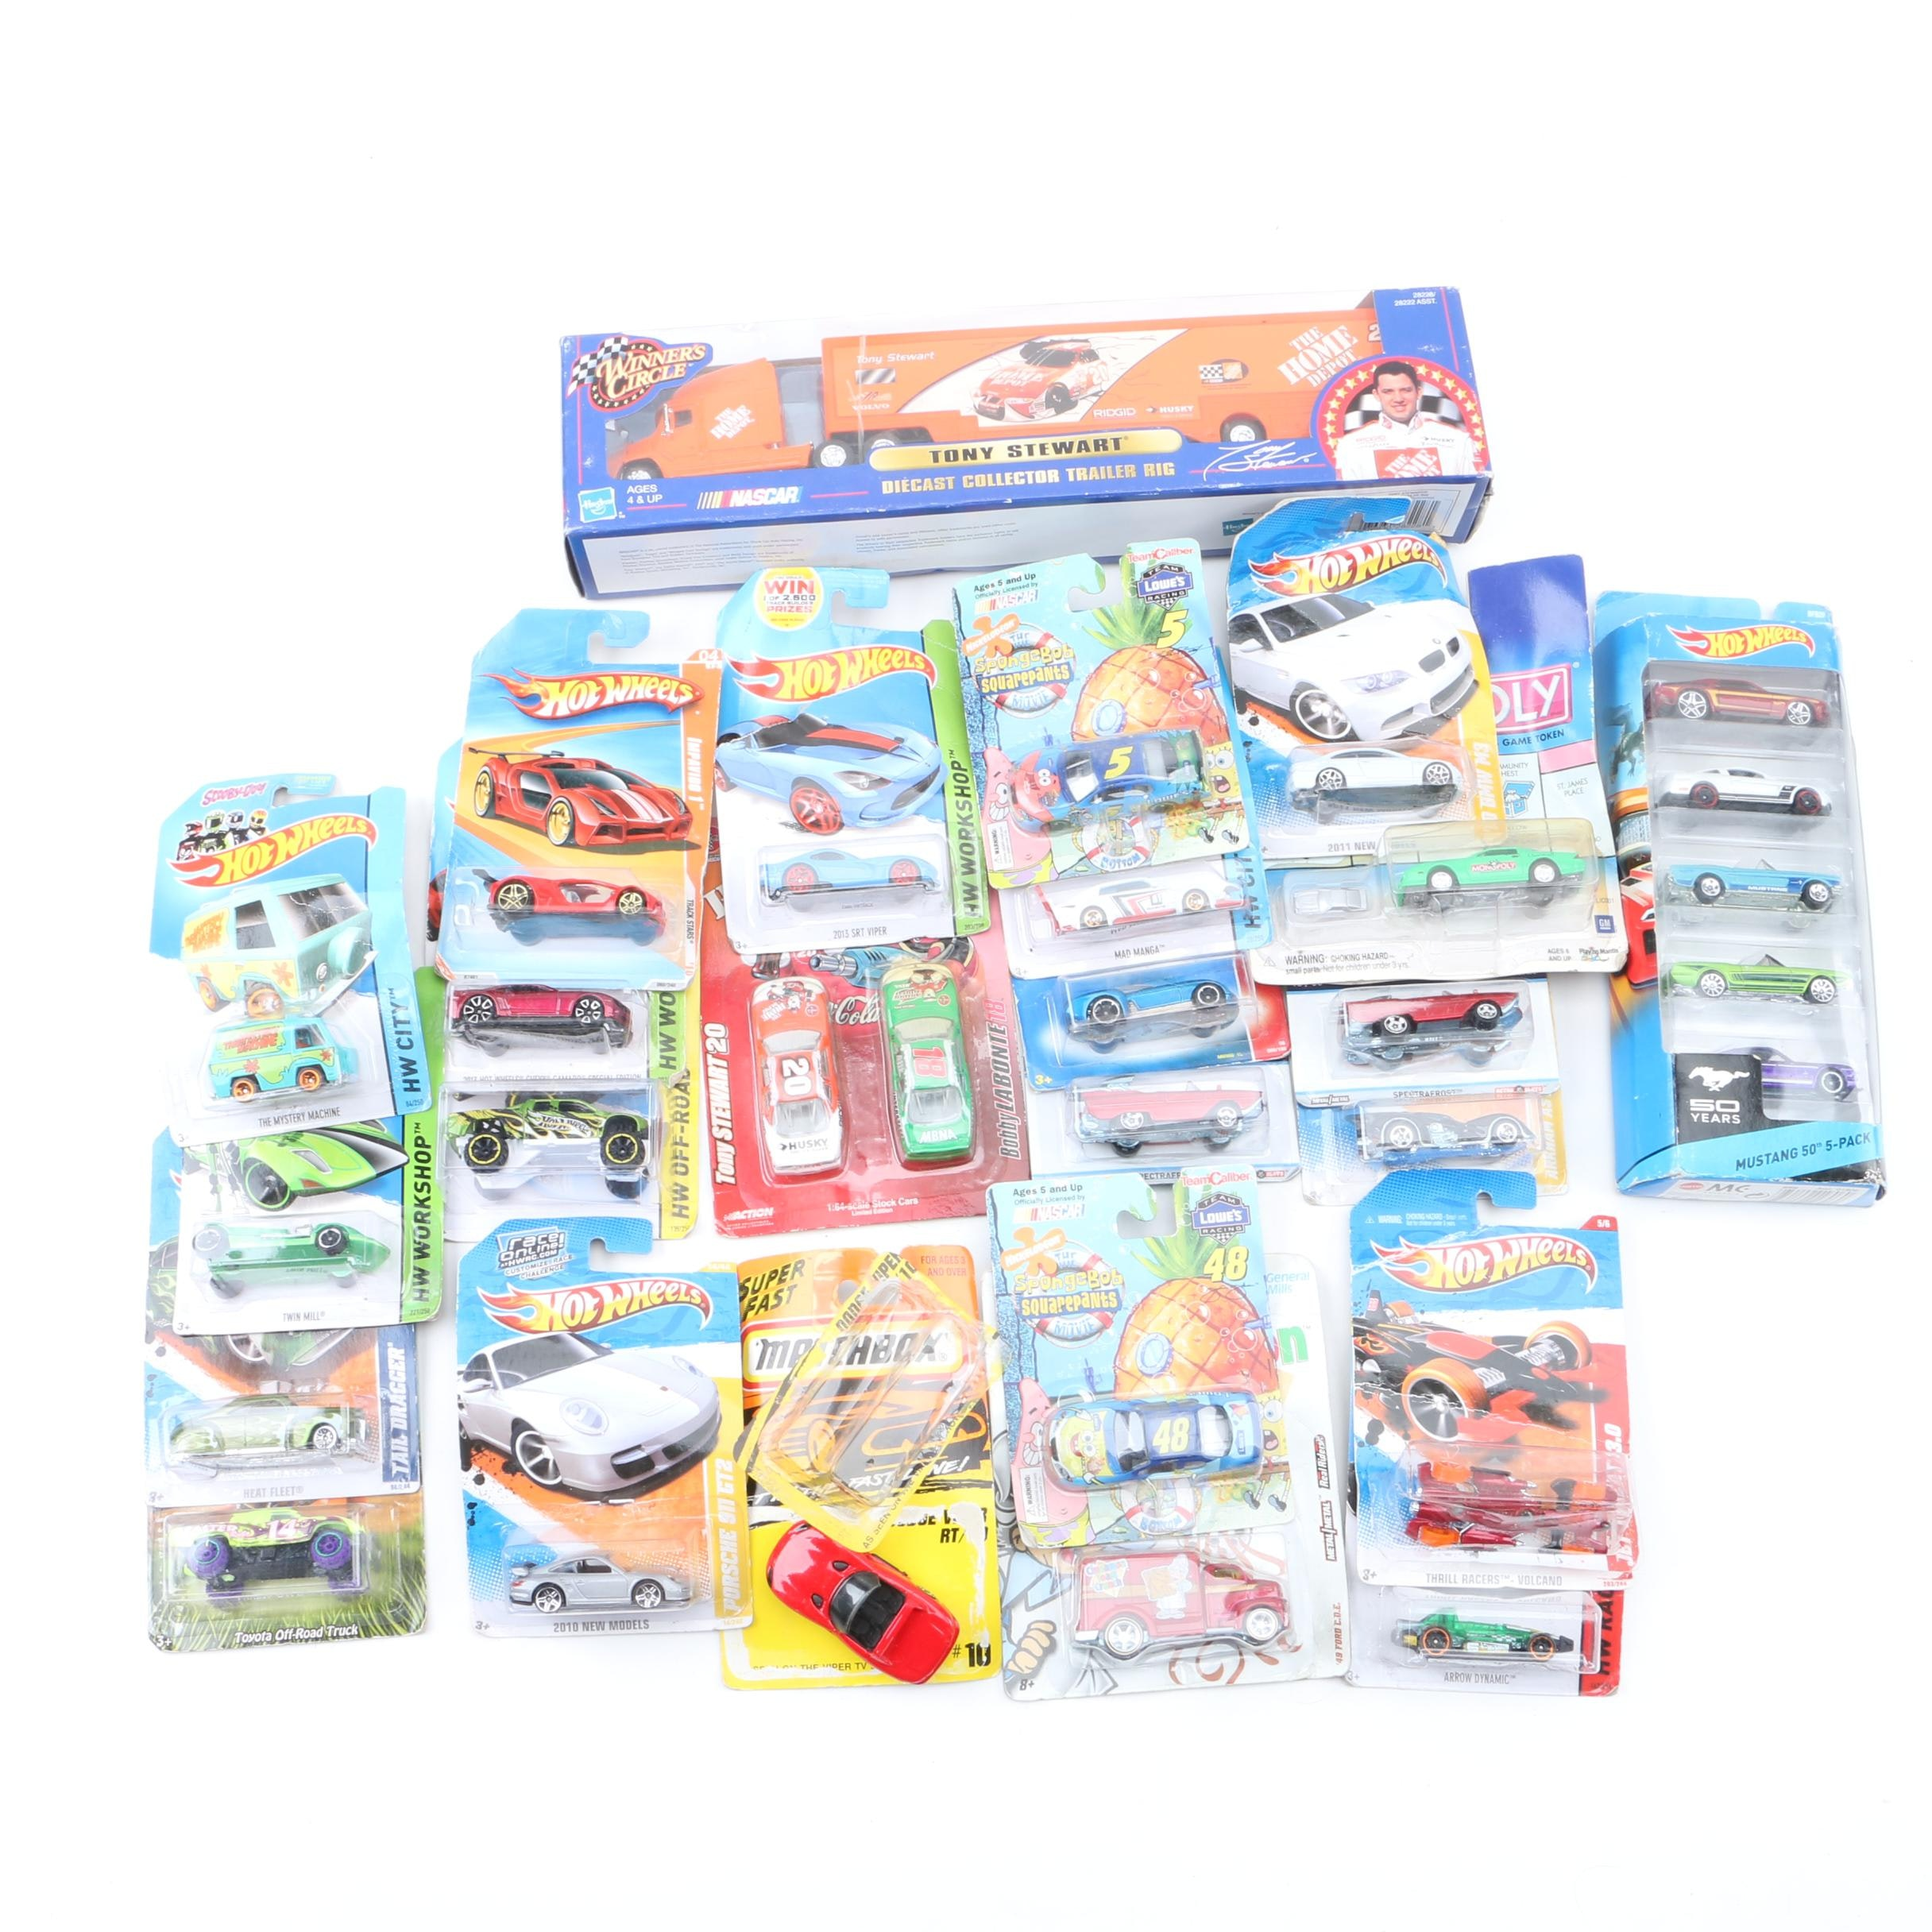 Miniature Scale Replica Die-Cast Cars Including Hot Wheels